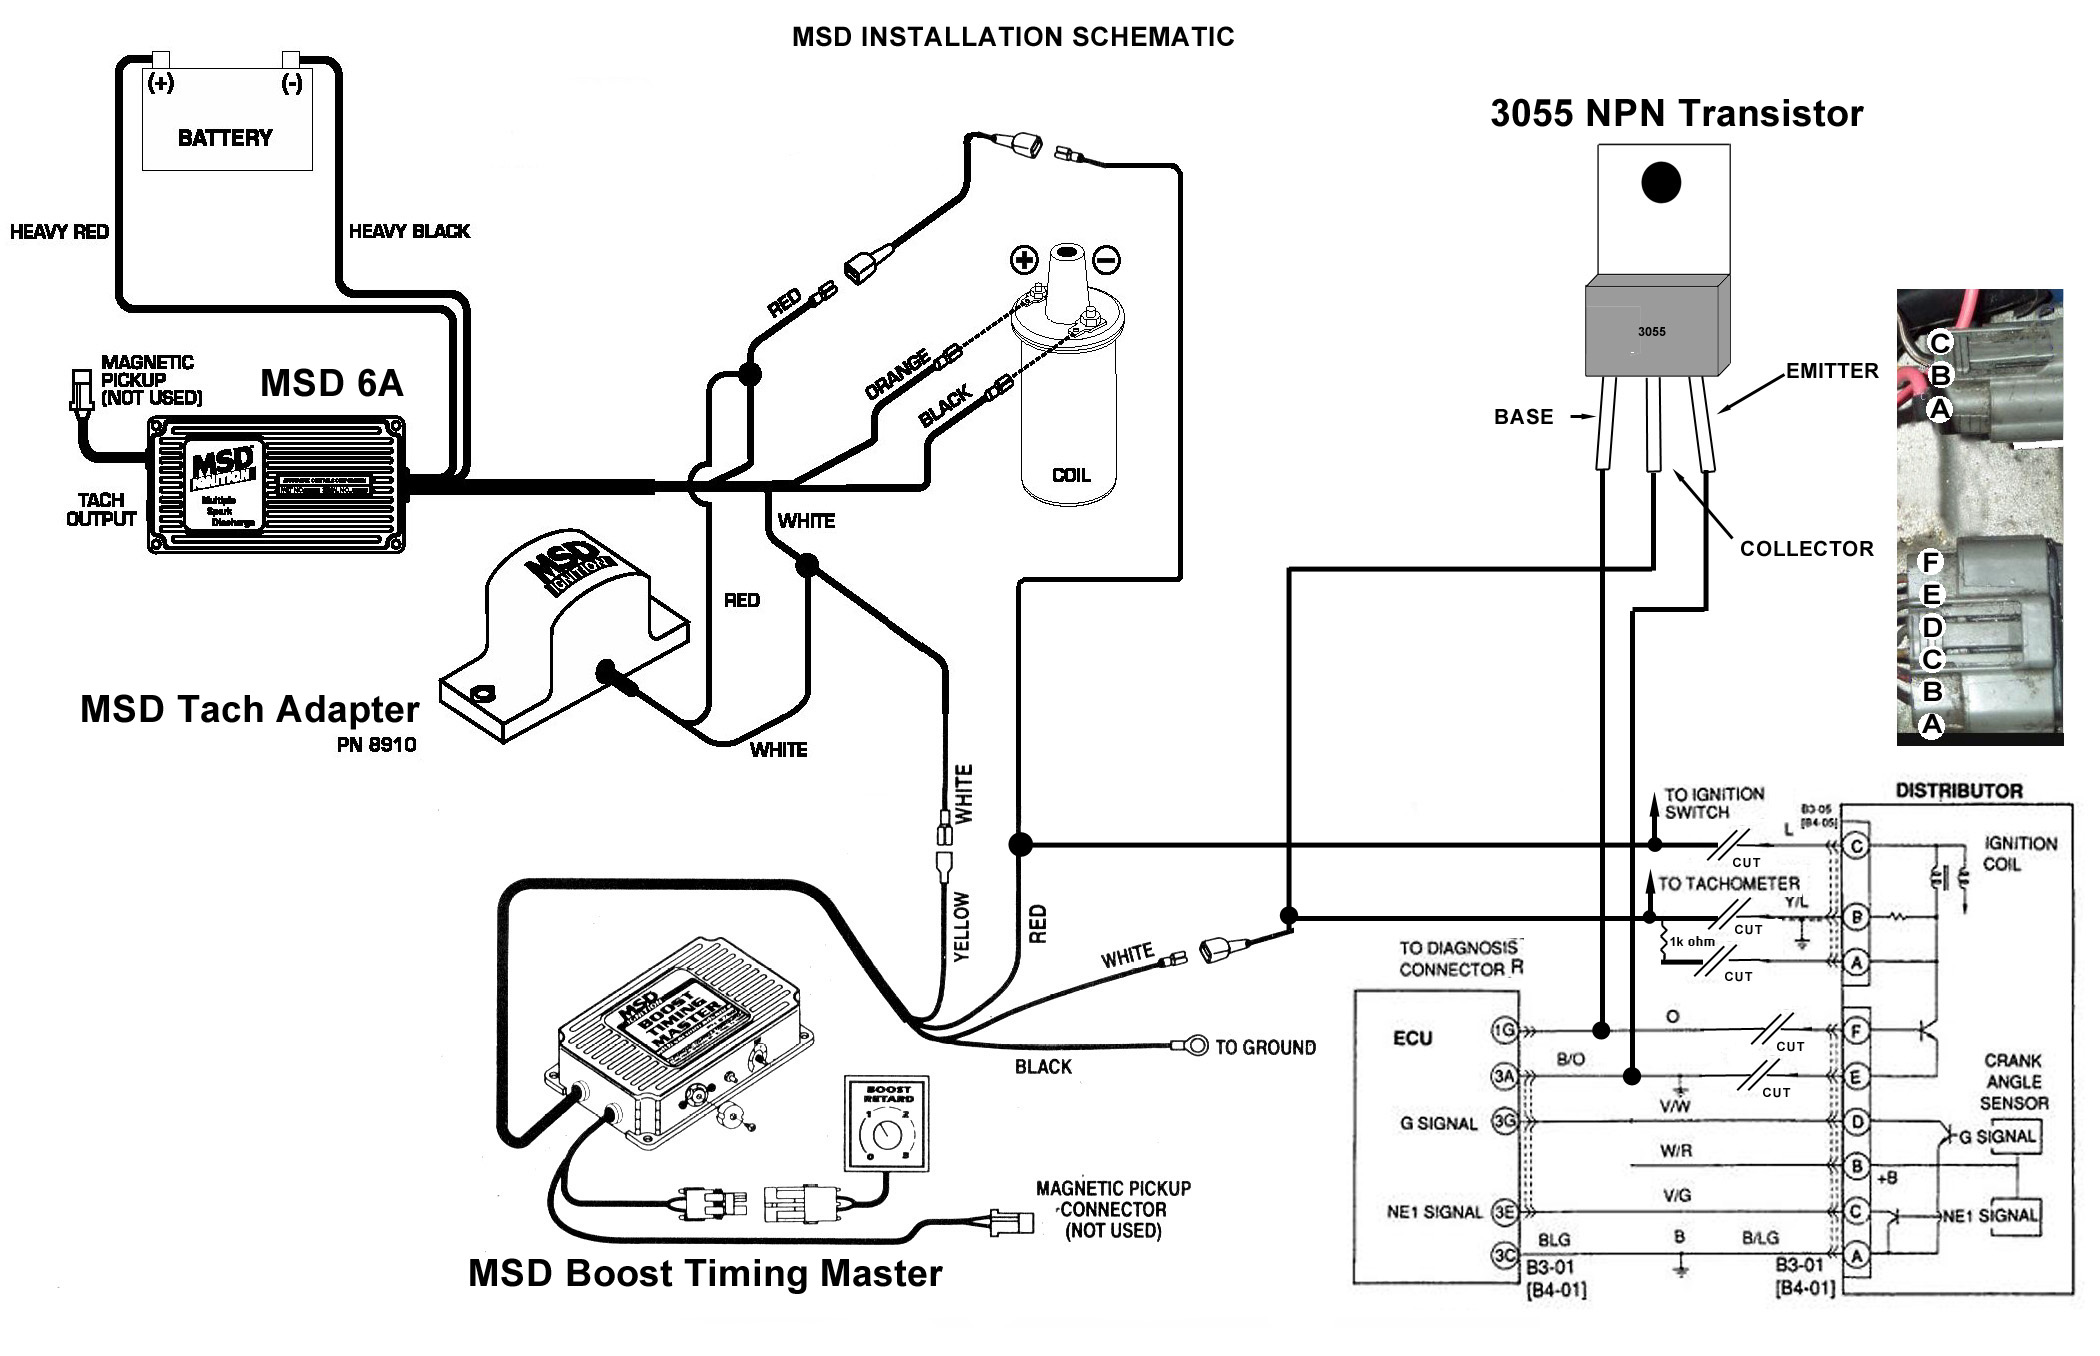 msd_complete msd wiring diagram mazda mx 6 forum msd 6ls wiring diagram at fashall.co